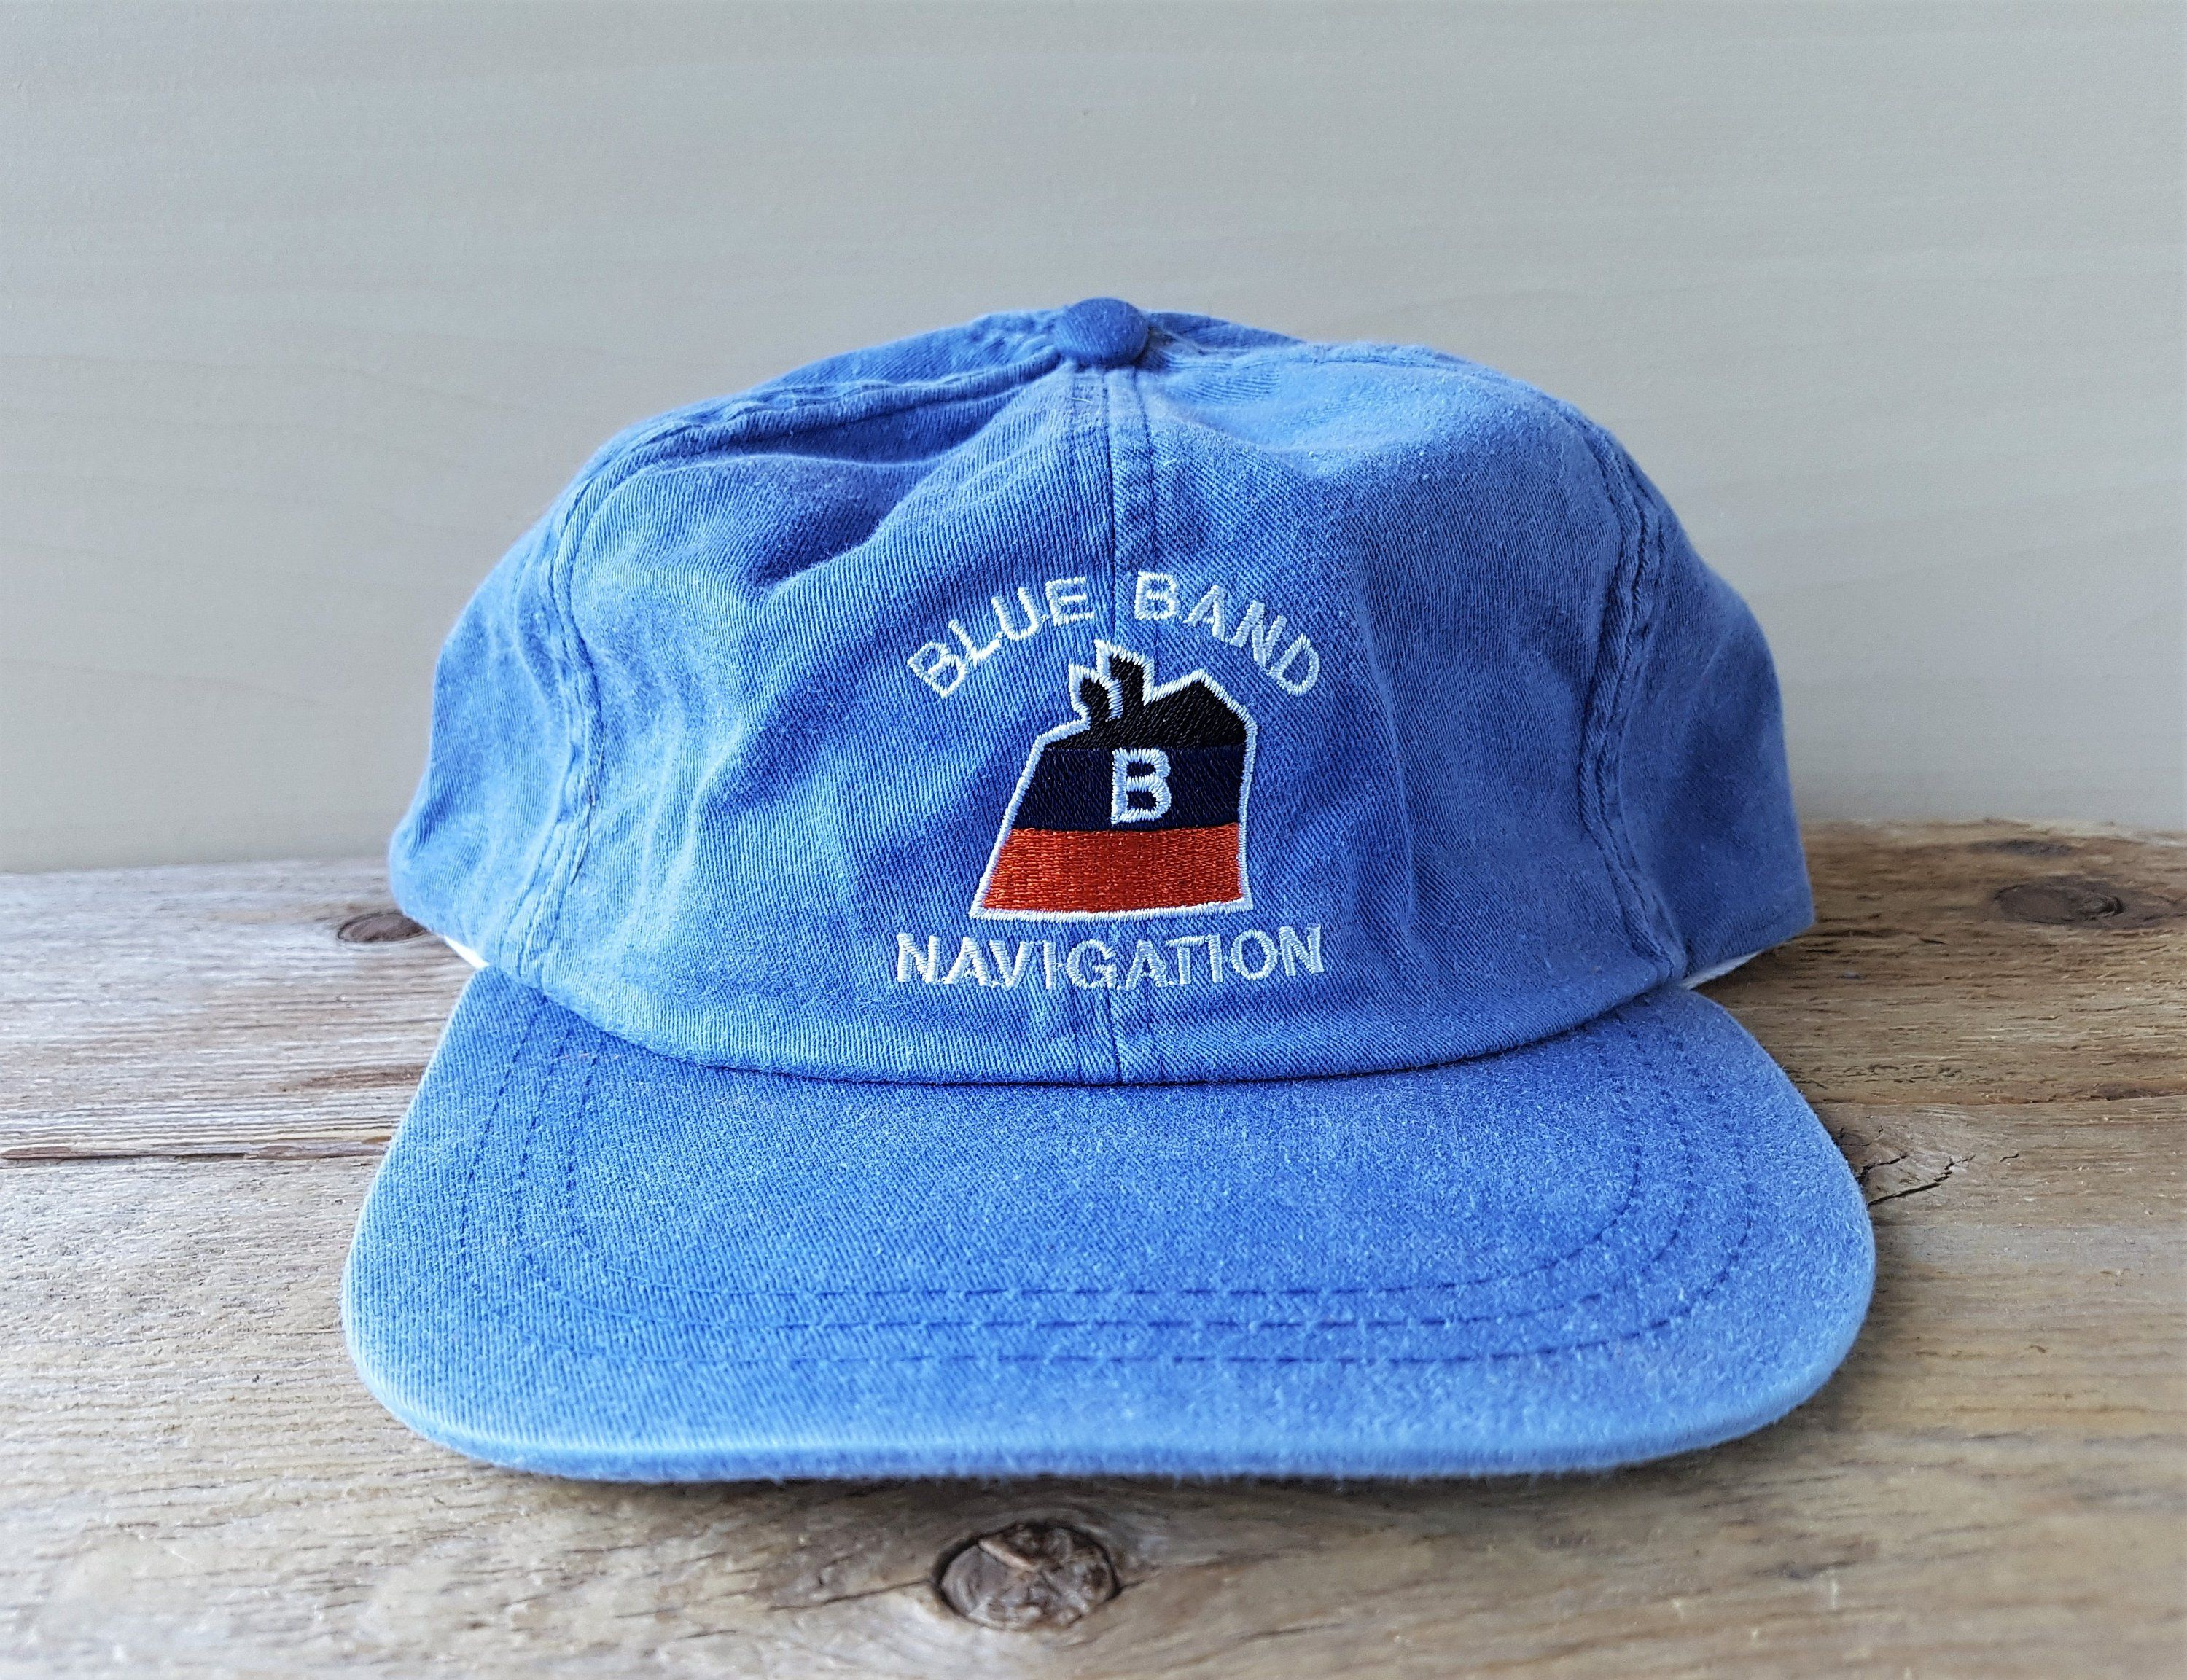 Blue Band Navigation Vintage Dad Hat Strapback 6 Panel Baseball Cap Unstructured Kp Caps Marine Towing Company Tugboat Promo Embroidere In 2020 Dad Hats Blue Band Hats